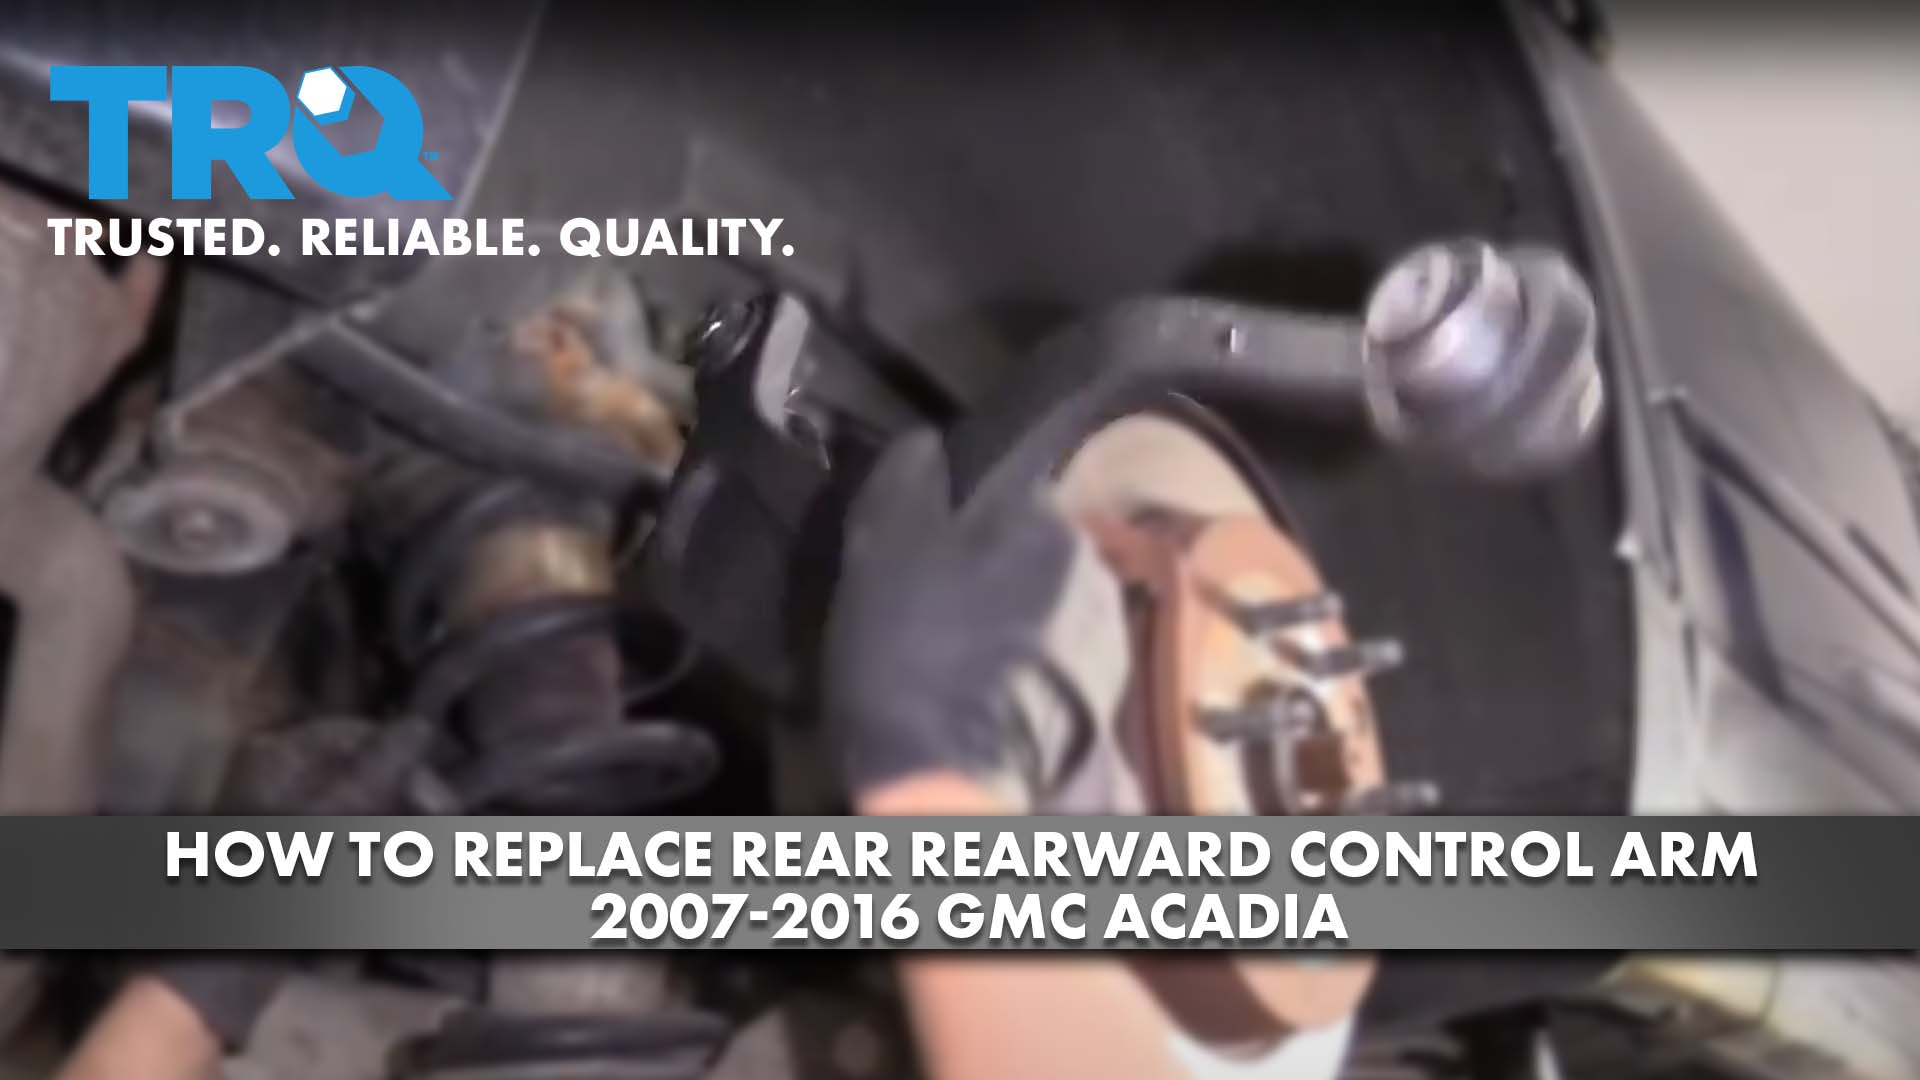 How To Replace Rear Rearward Control Arm 2007-16 GMC Acadia